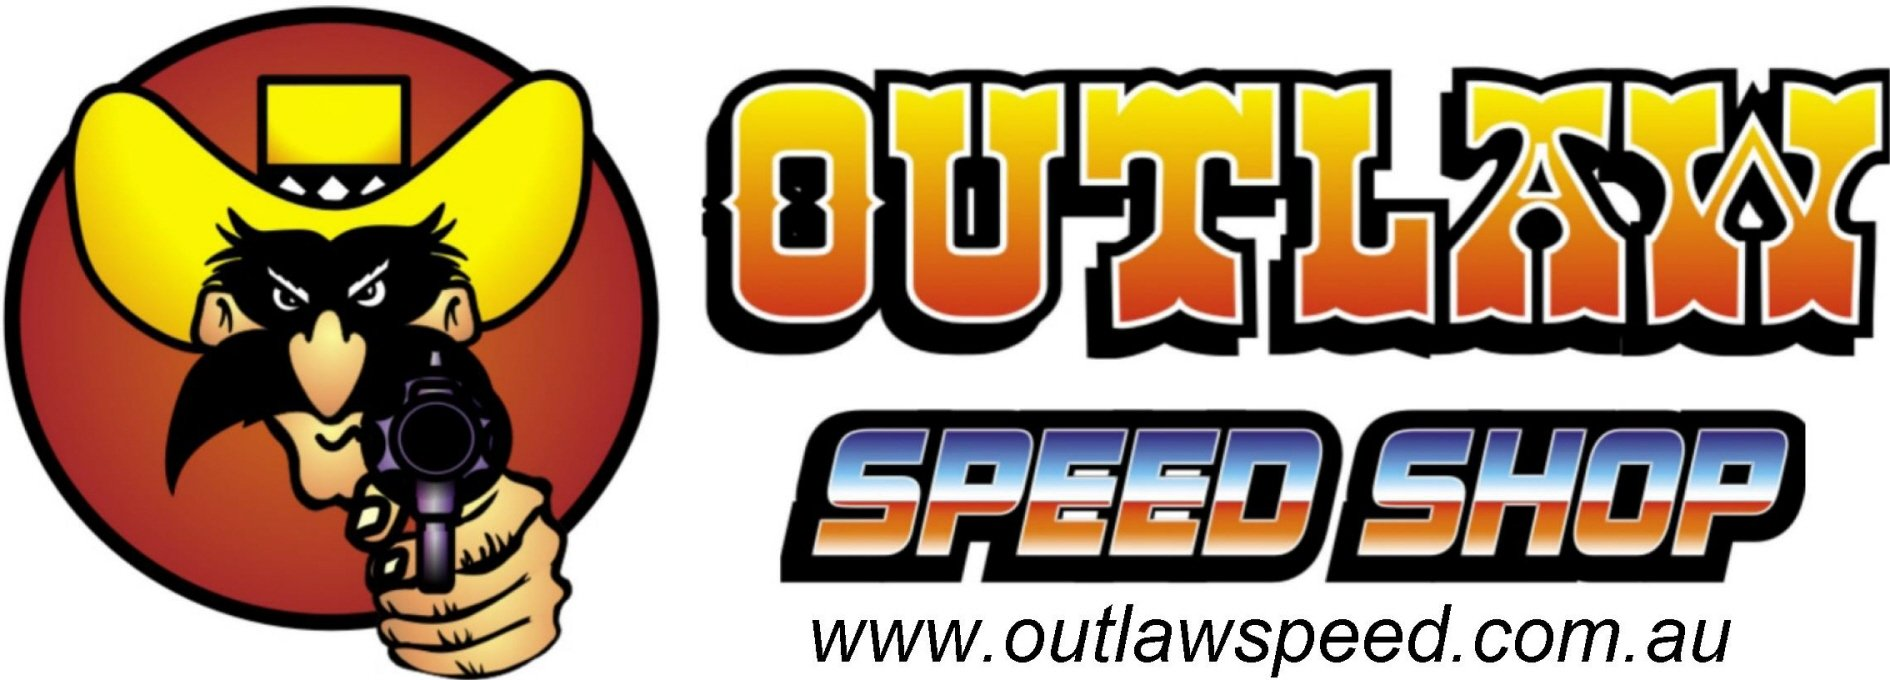 Outlaw Speed Shop - Rosewater, SA 5013 - (08) 8240 9500 | ShowMeLocal.com